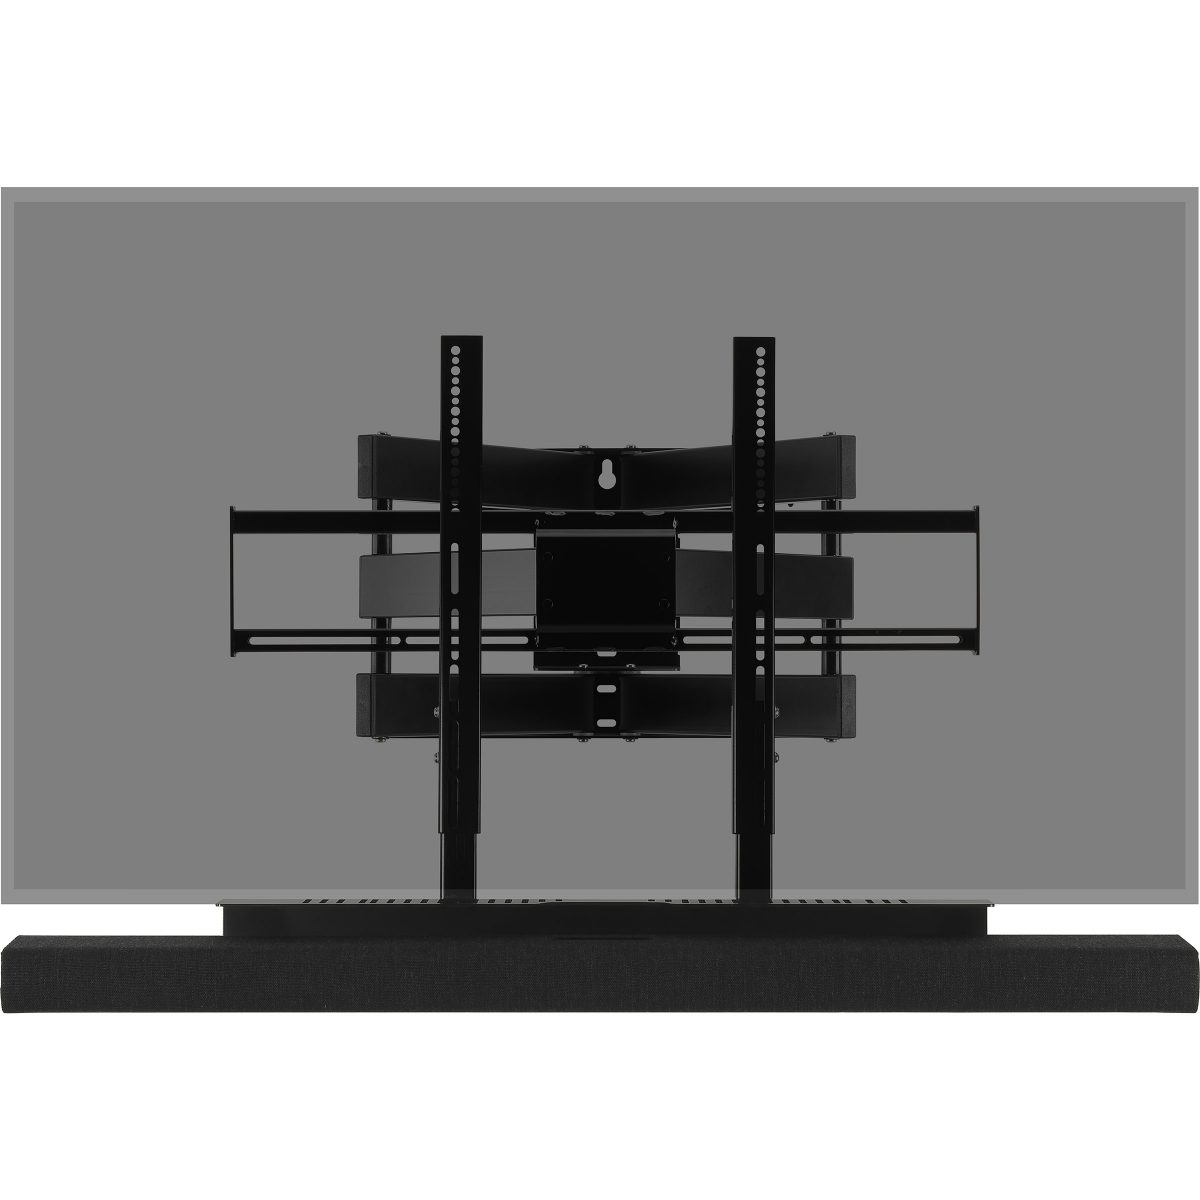 Harman Kardon Citation Bar cantilever 4